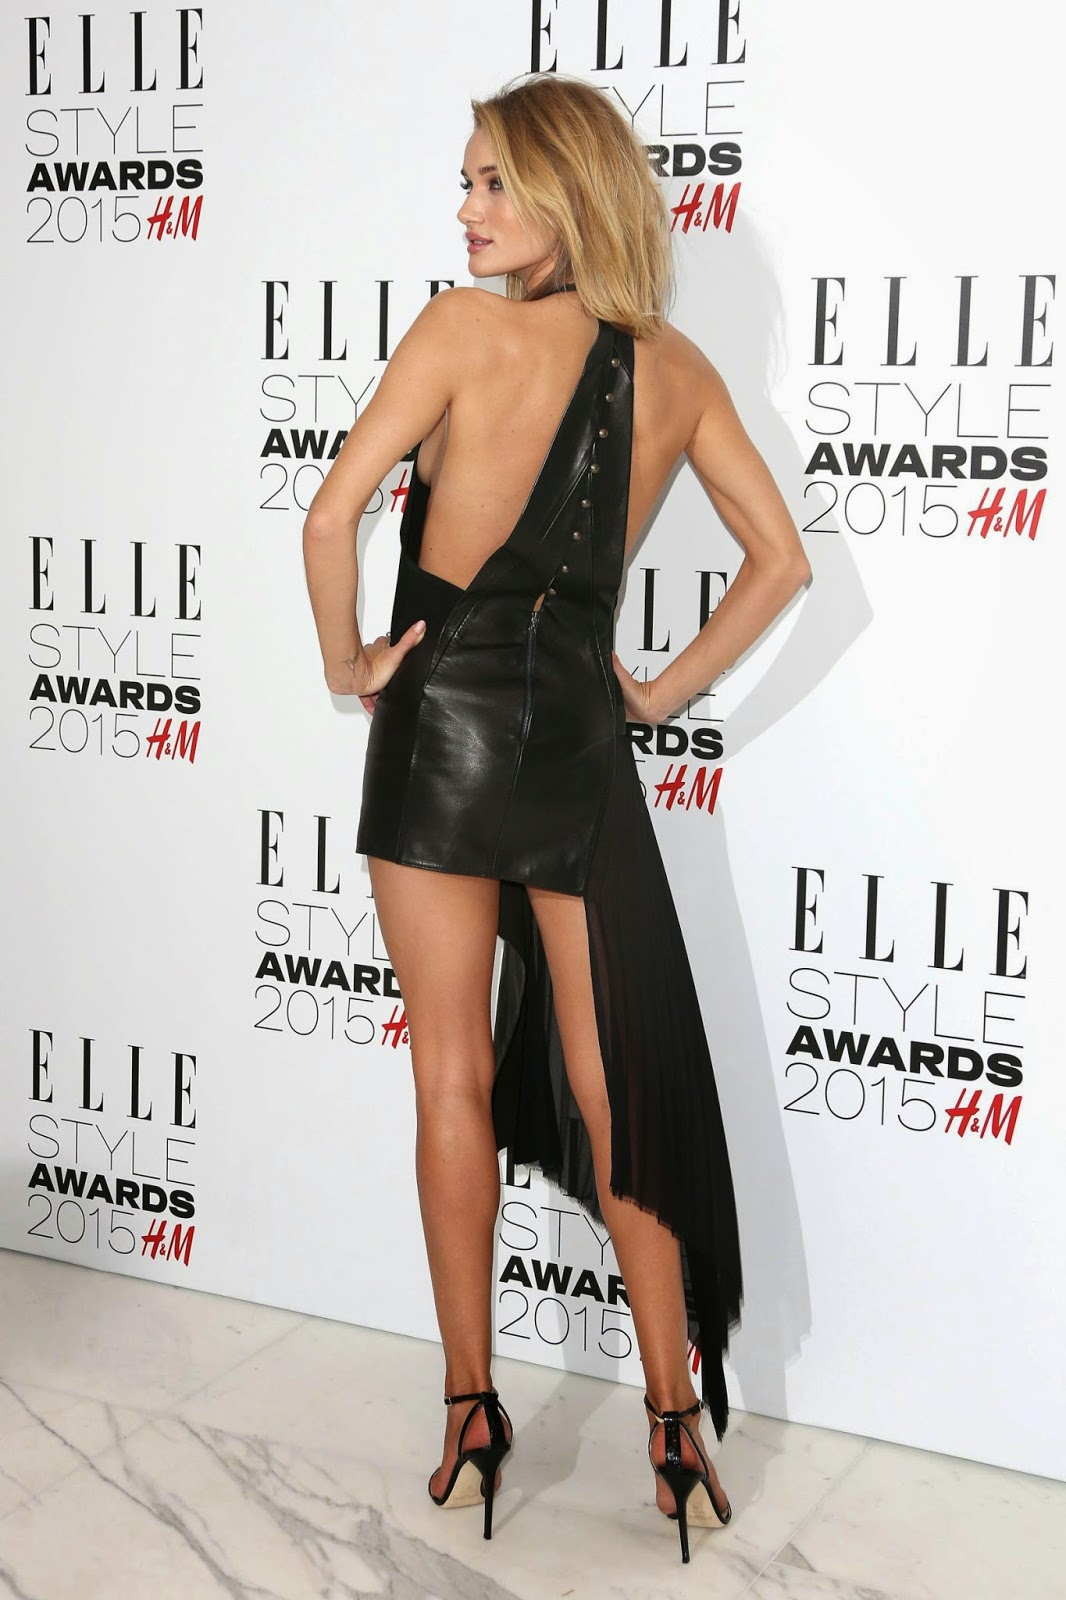 Rosie Huntington-Whiteley at Elle Style Awards 2015 in London